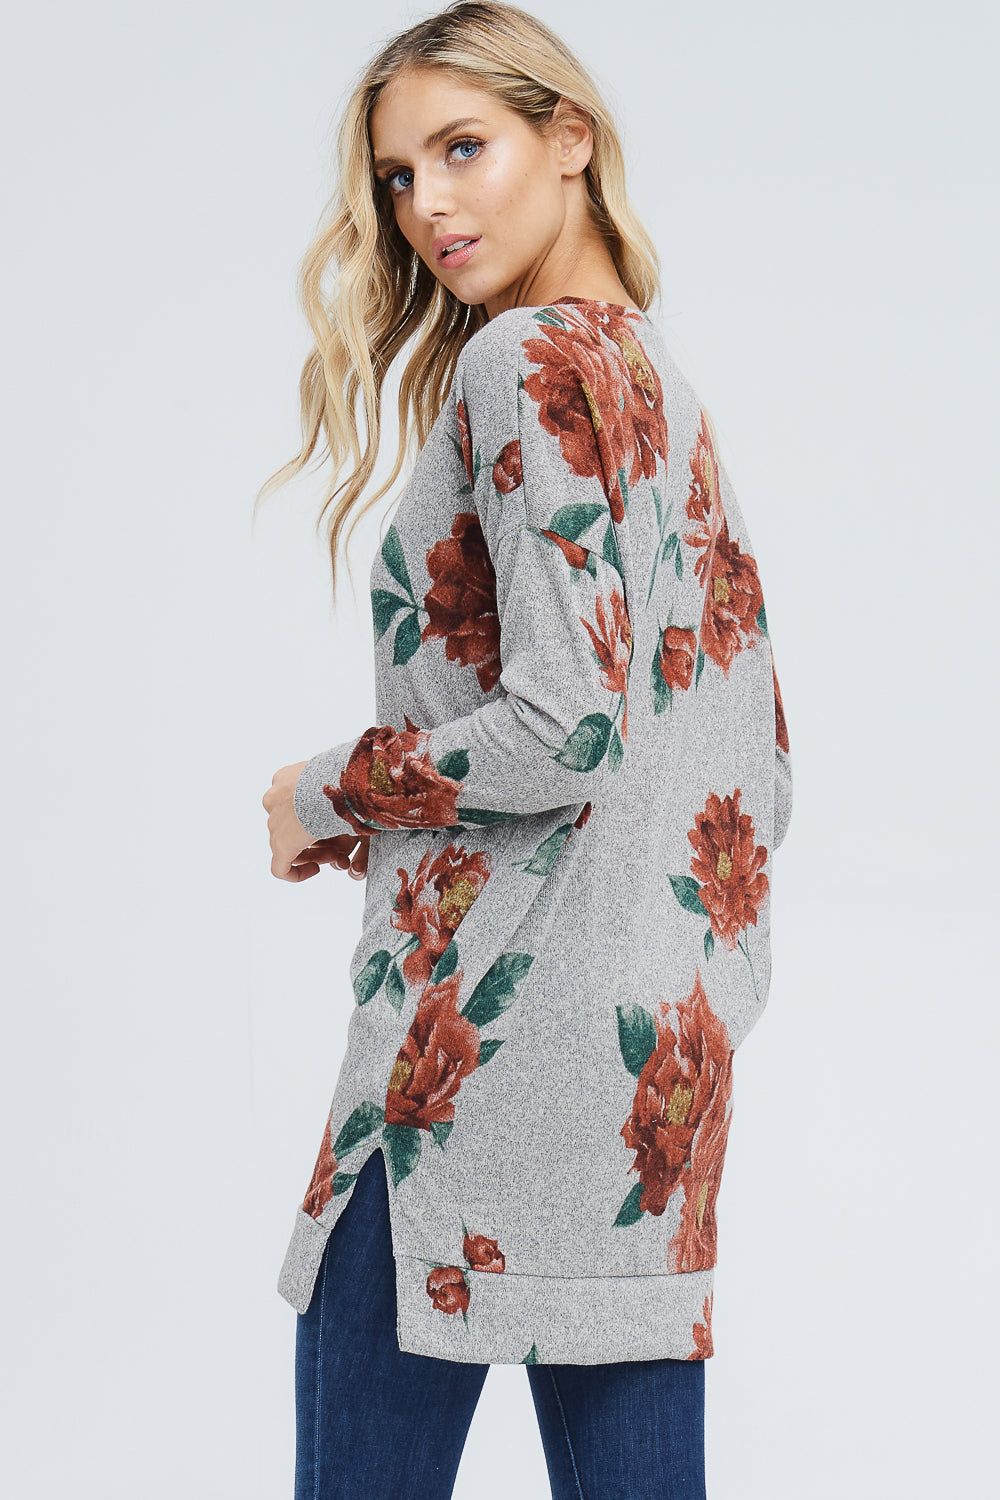 Saffron Floral V-Neck Tunic Top : Mocha